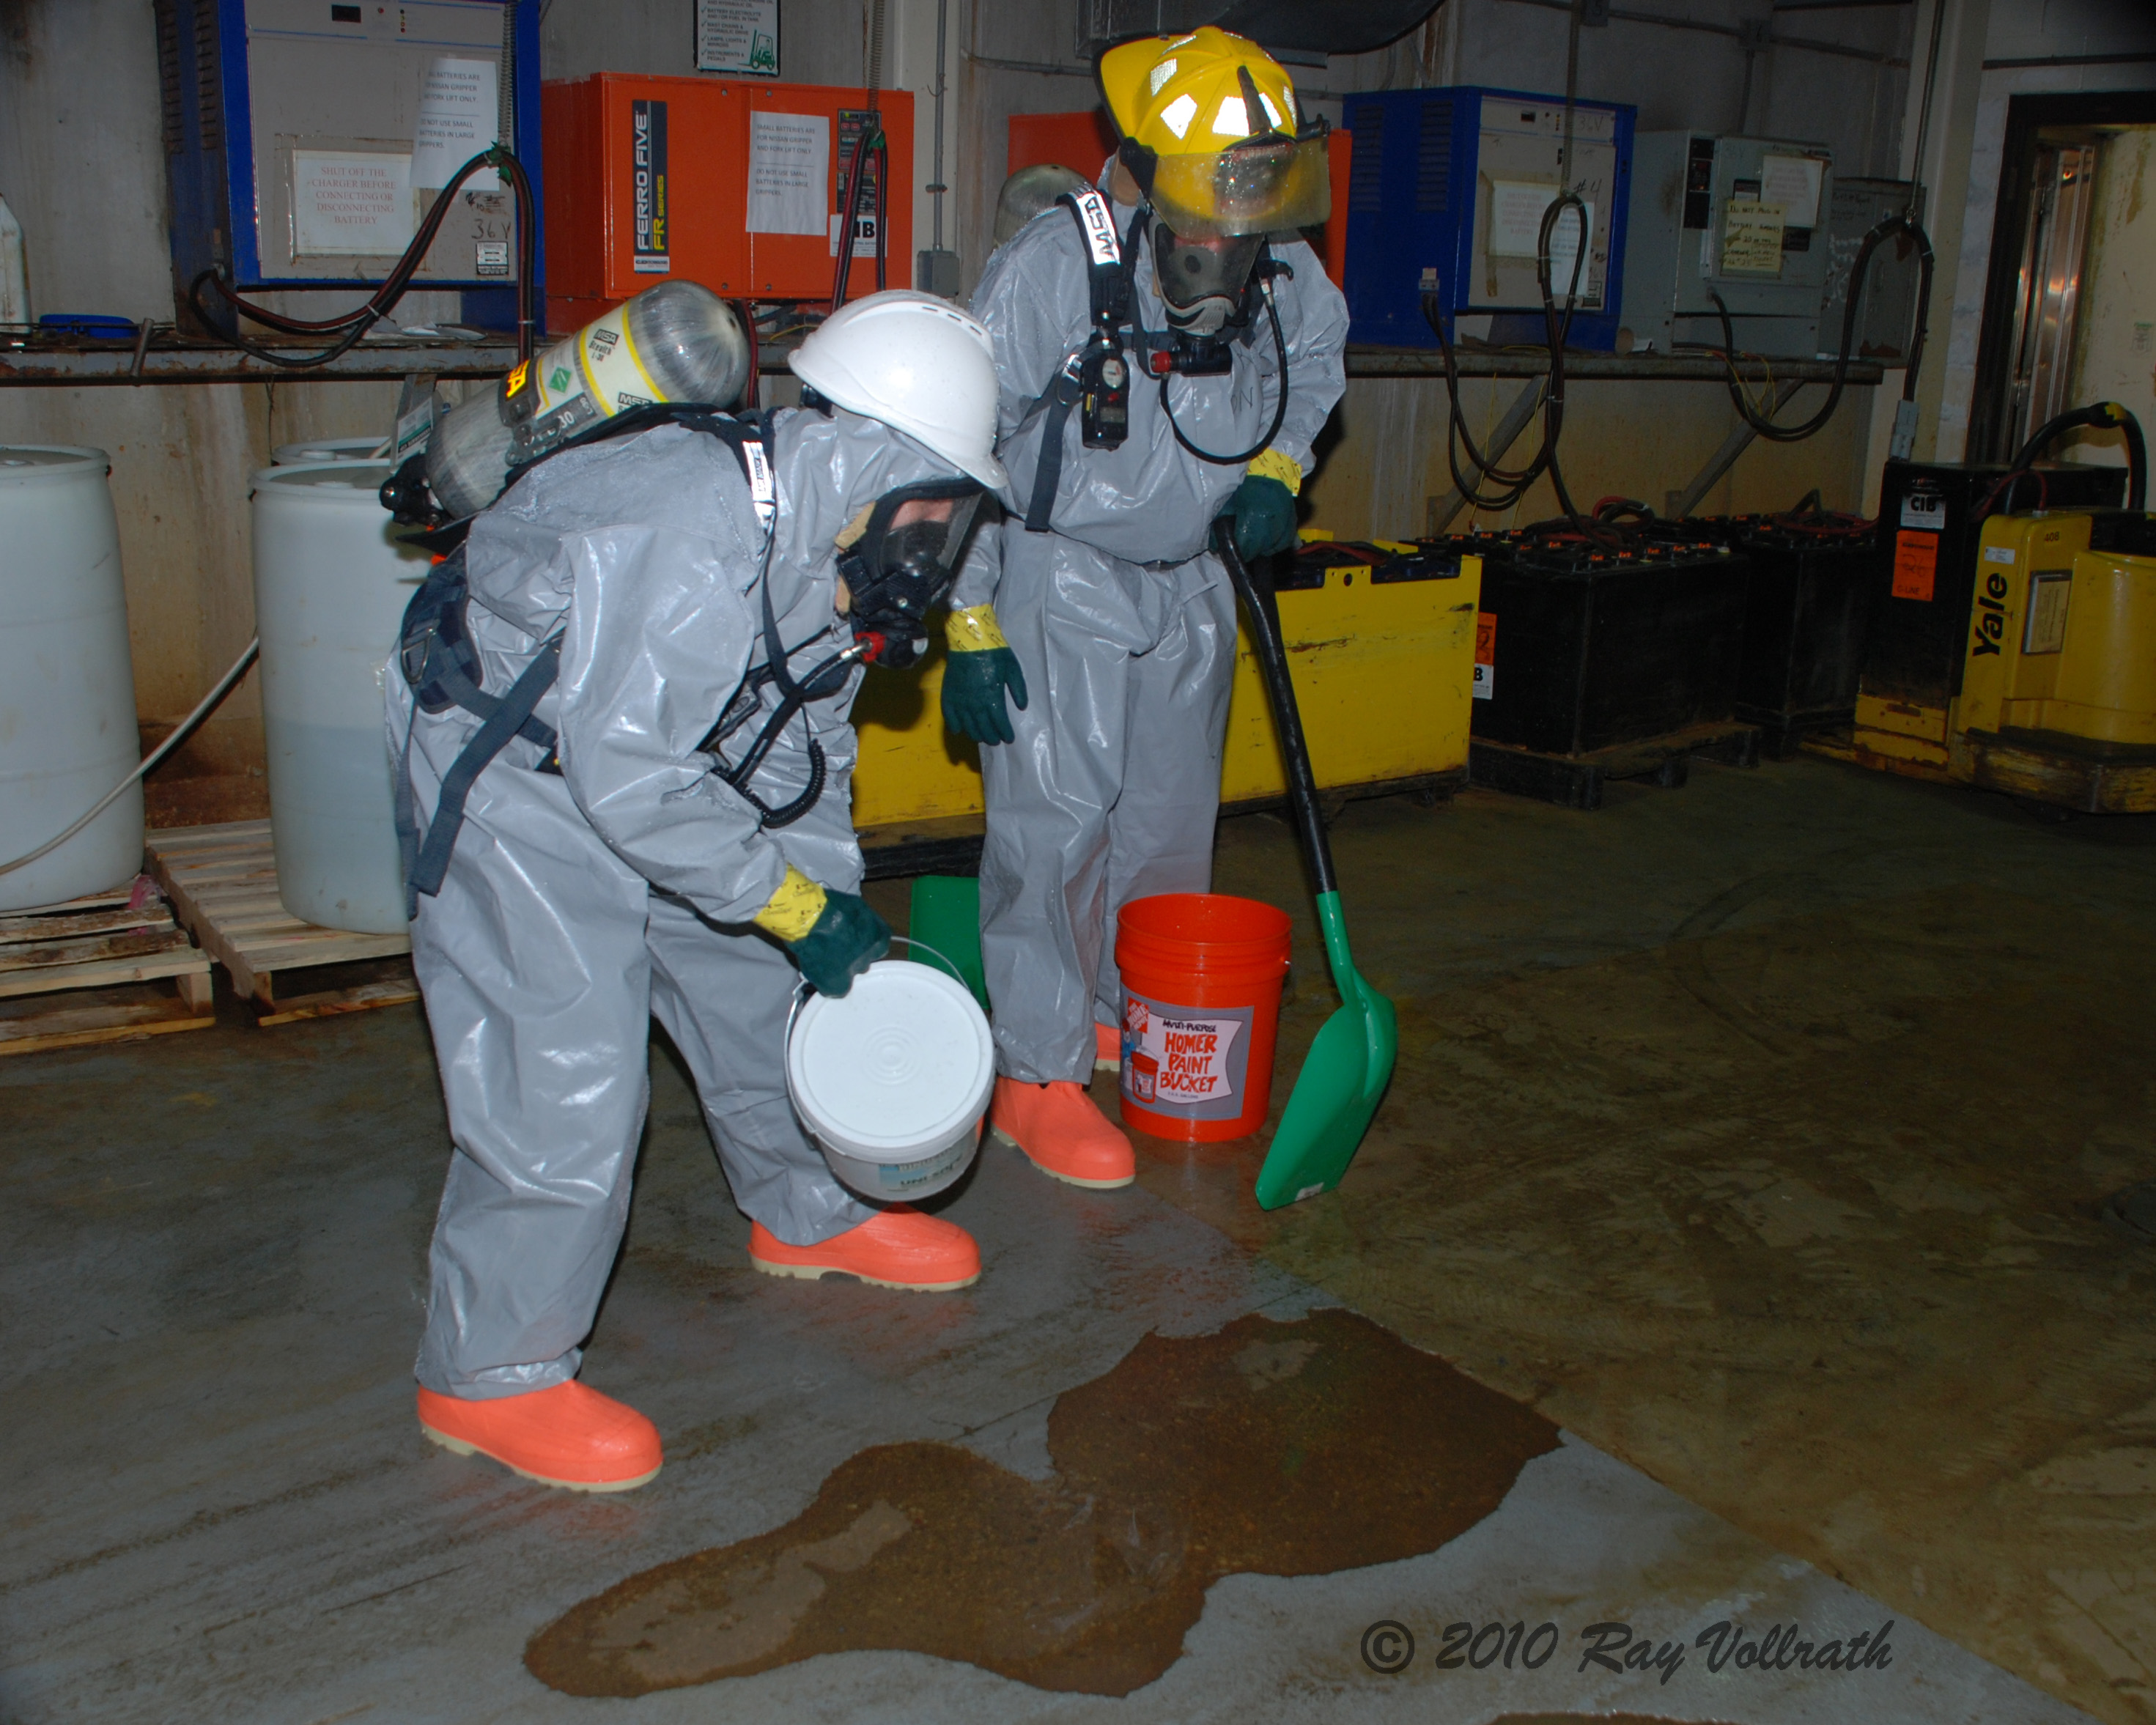 Cleaning Up Spills